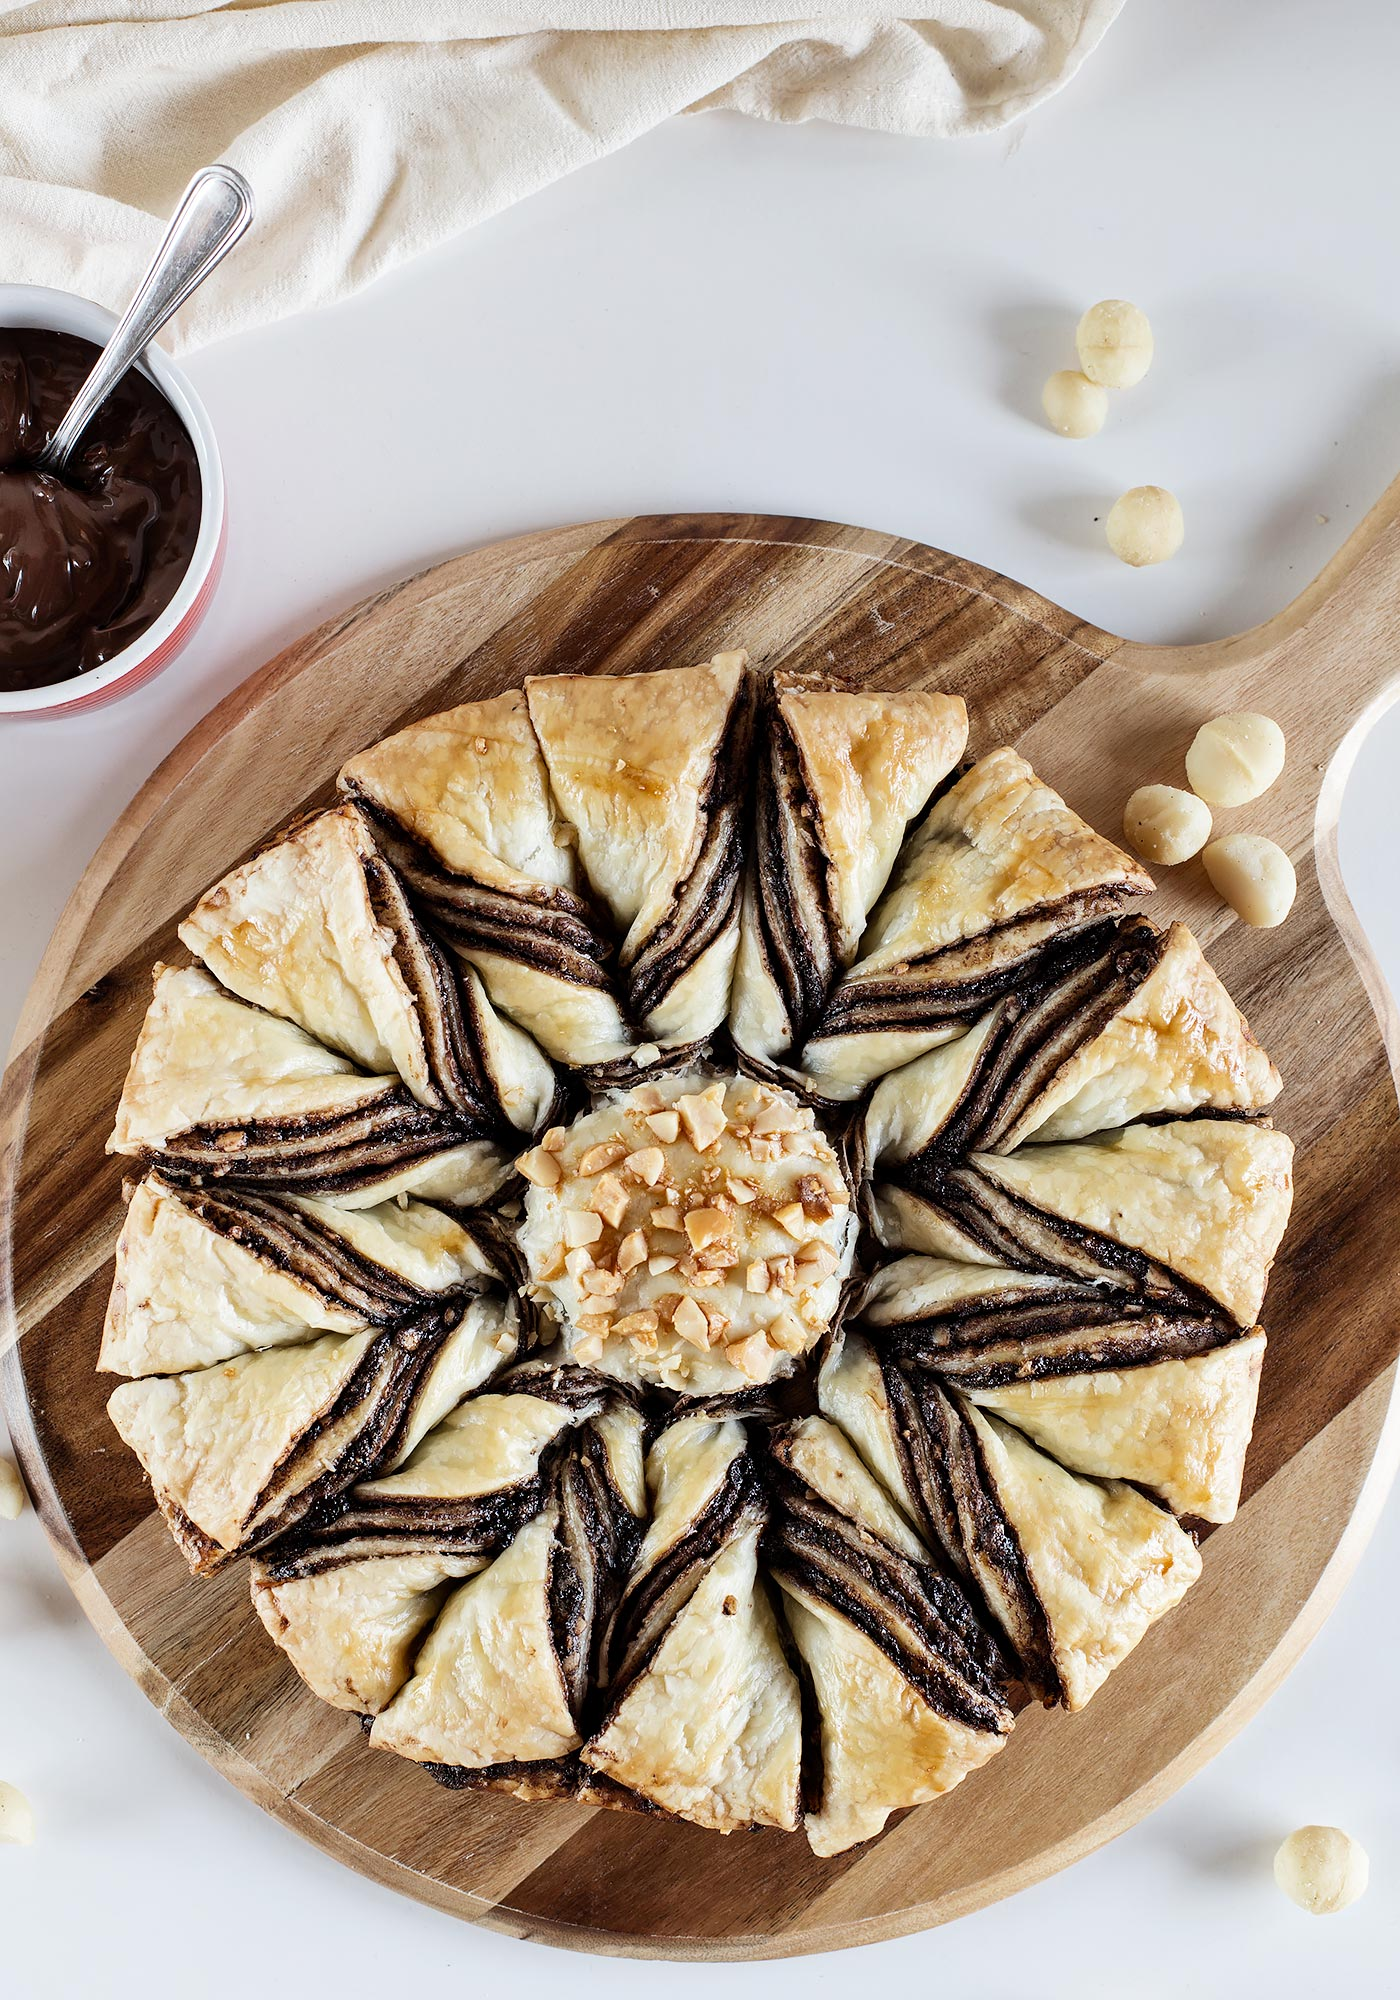 macadamia-chocolate-star-pastry4